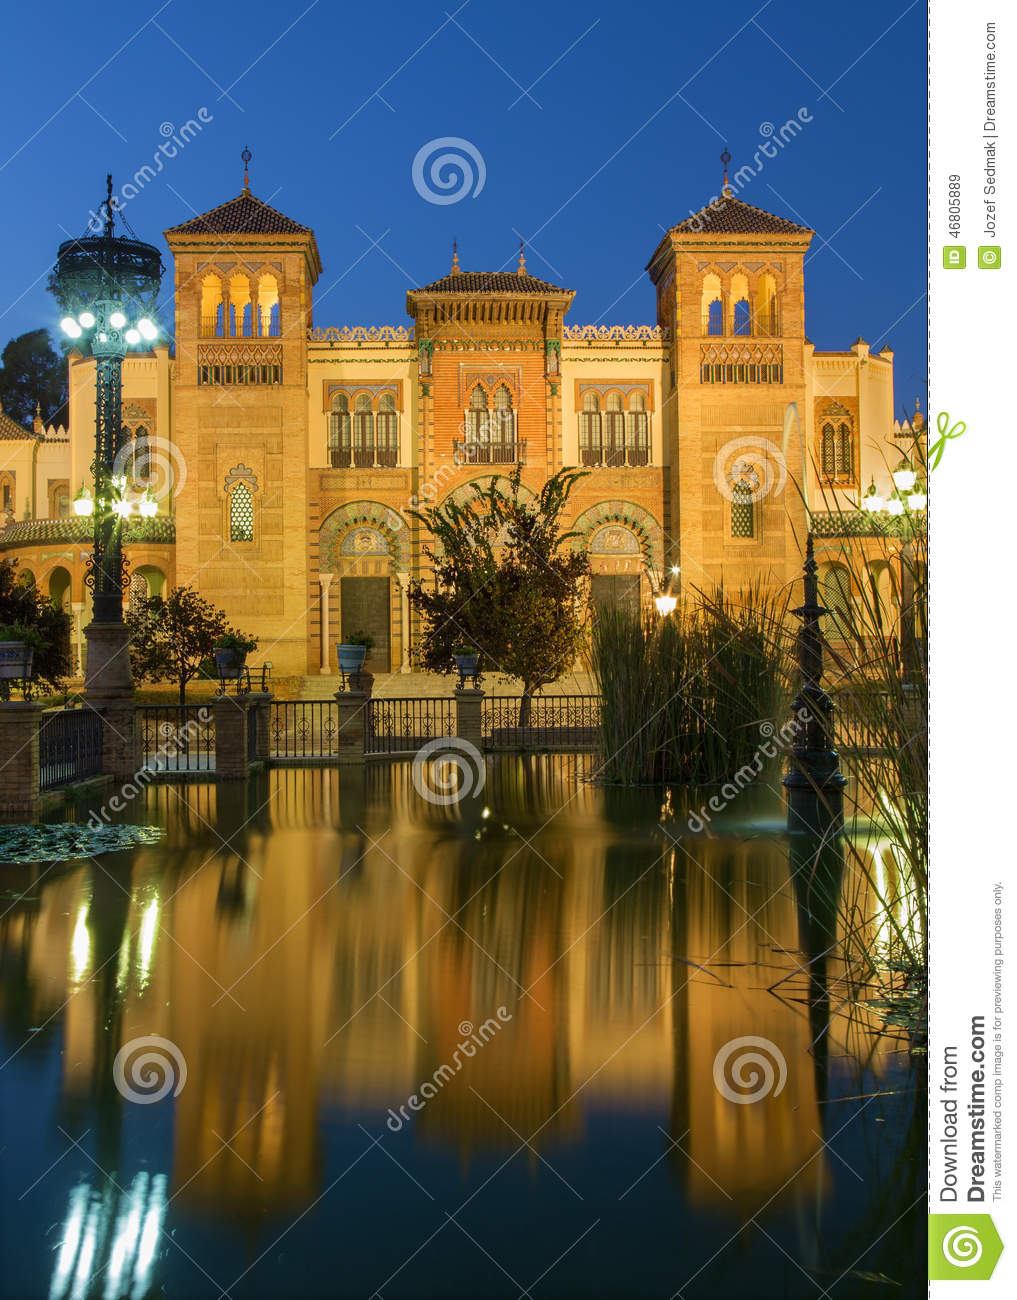 Seville - The Museum of Popular Arts and traditions (Museum of Artes y Costumbres Populares)